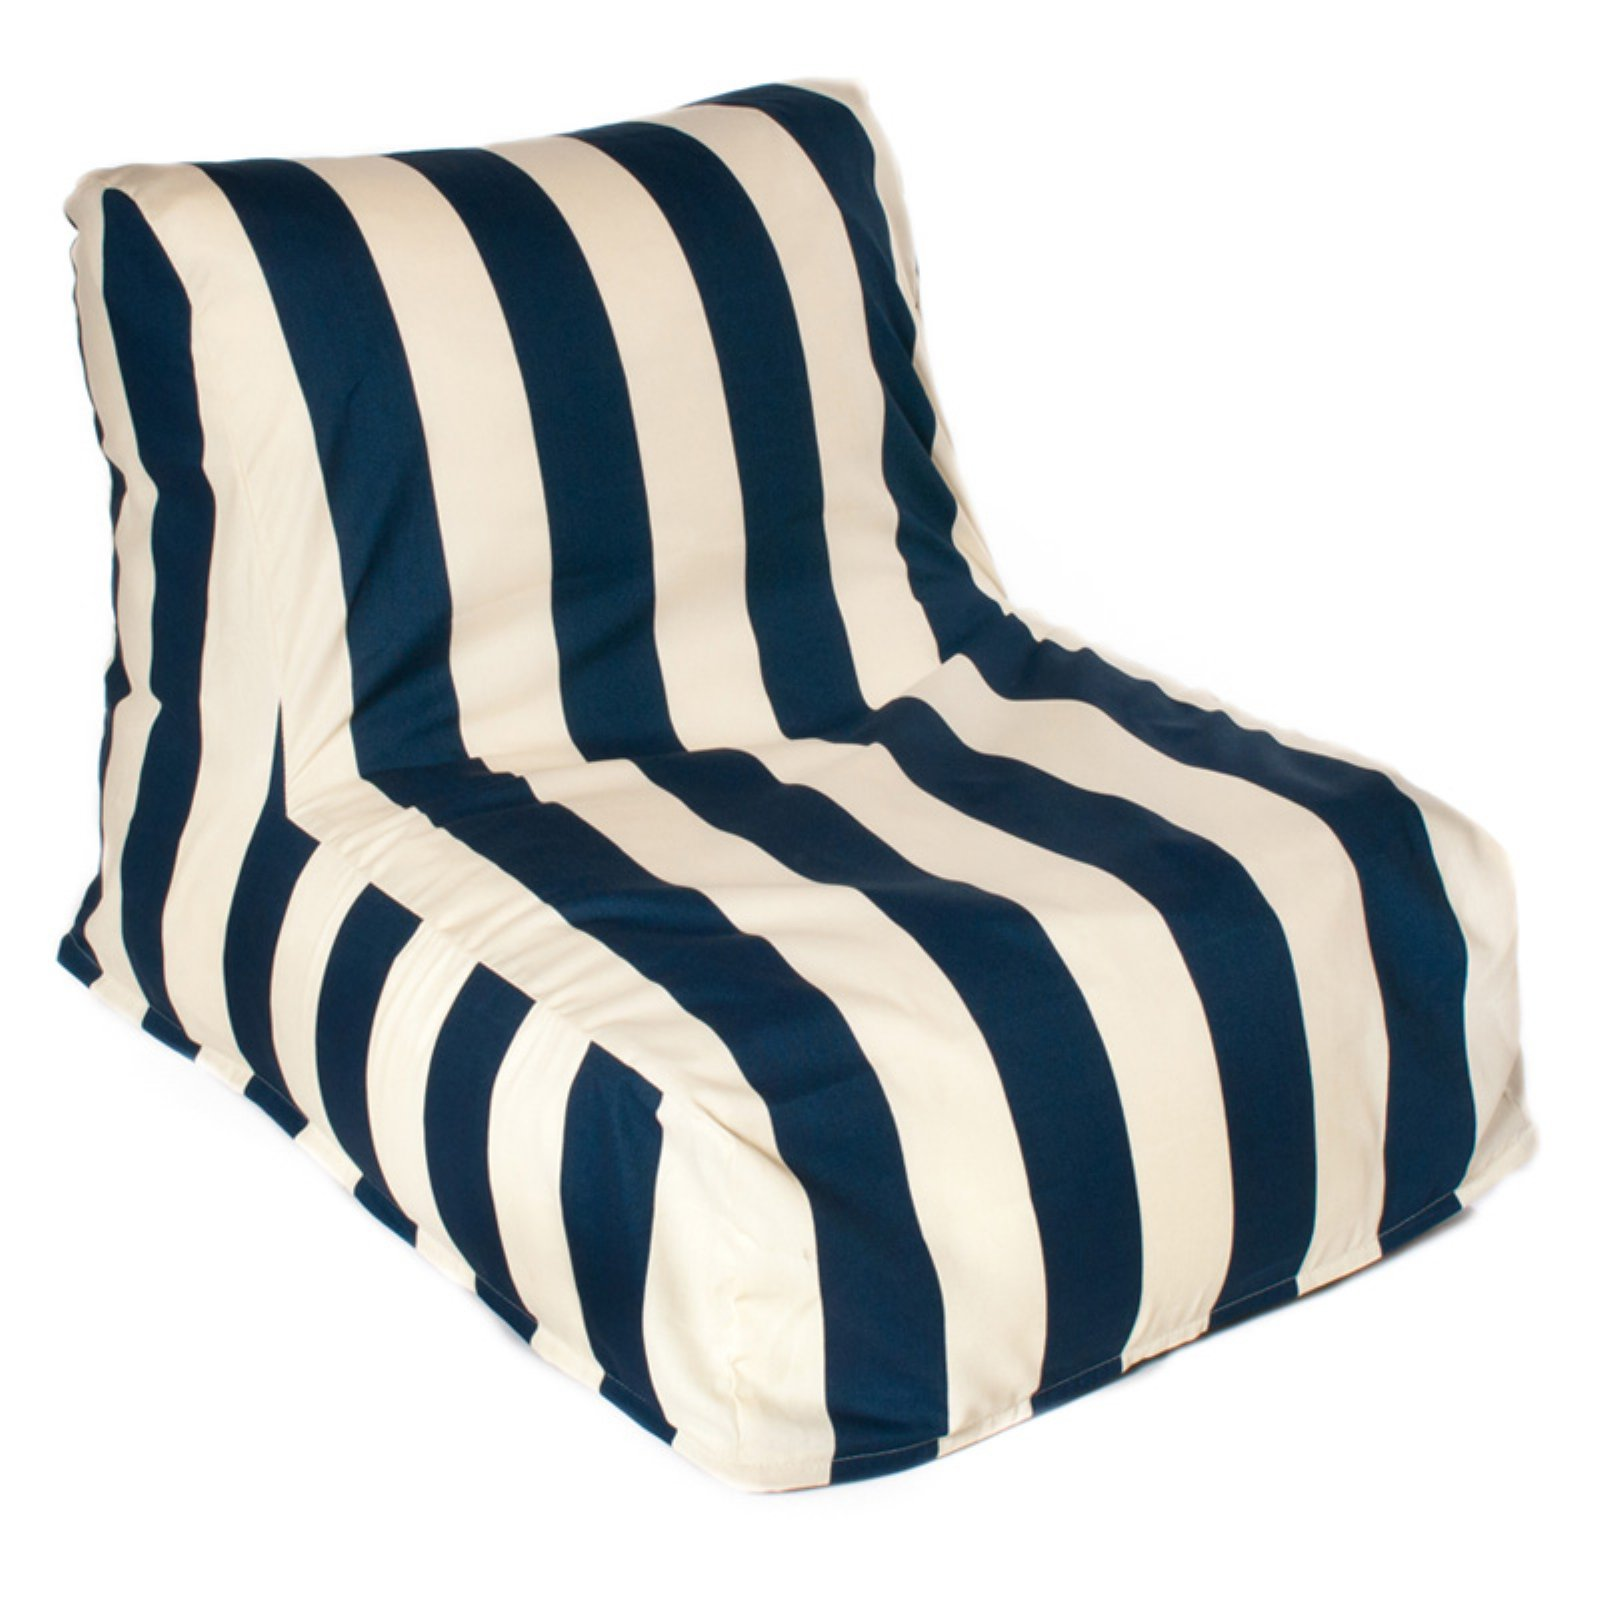 HRH Designs Indoor/Outdoor Beanbag Chair - Cabana